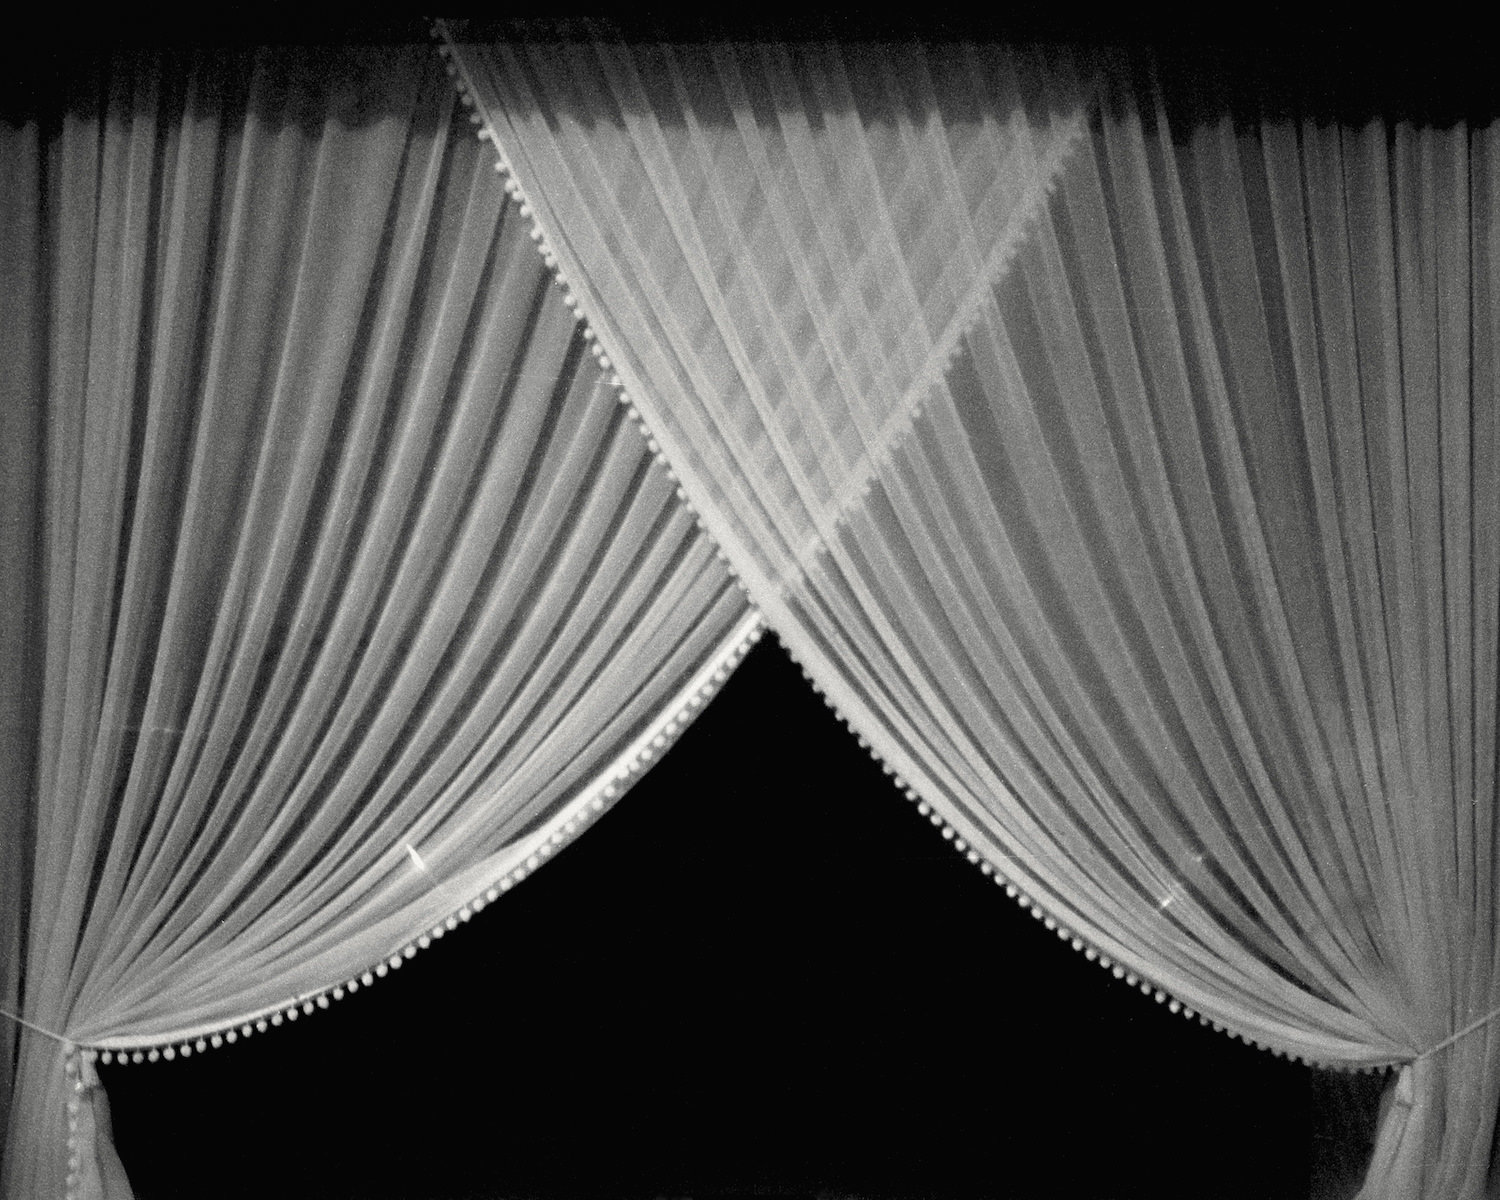 Curtains by Philip Sweeck